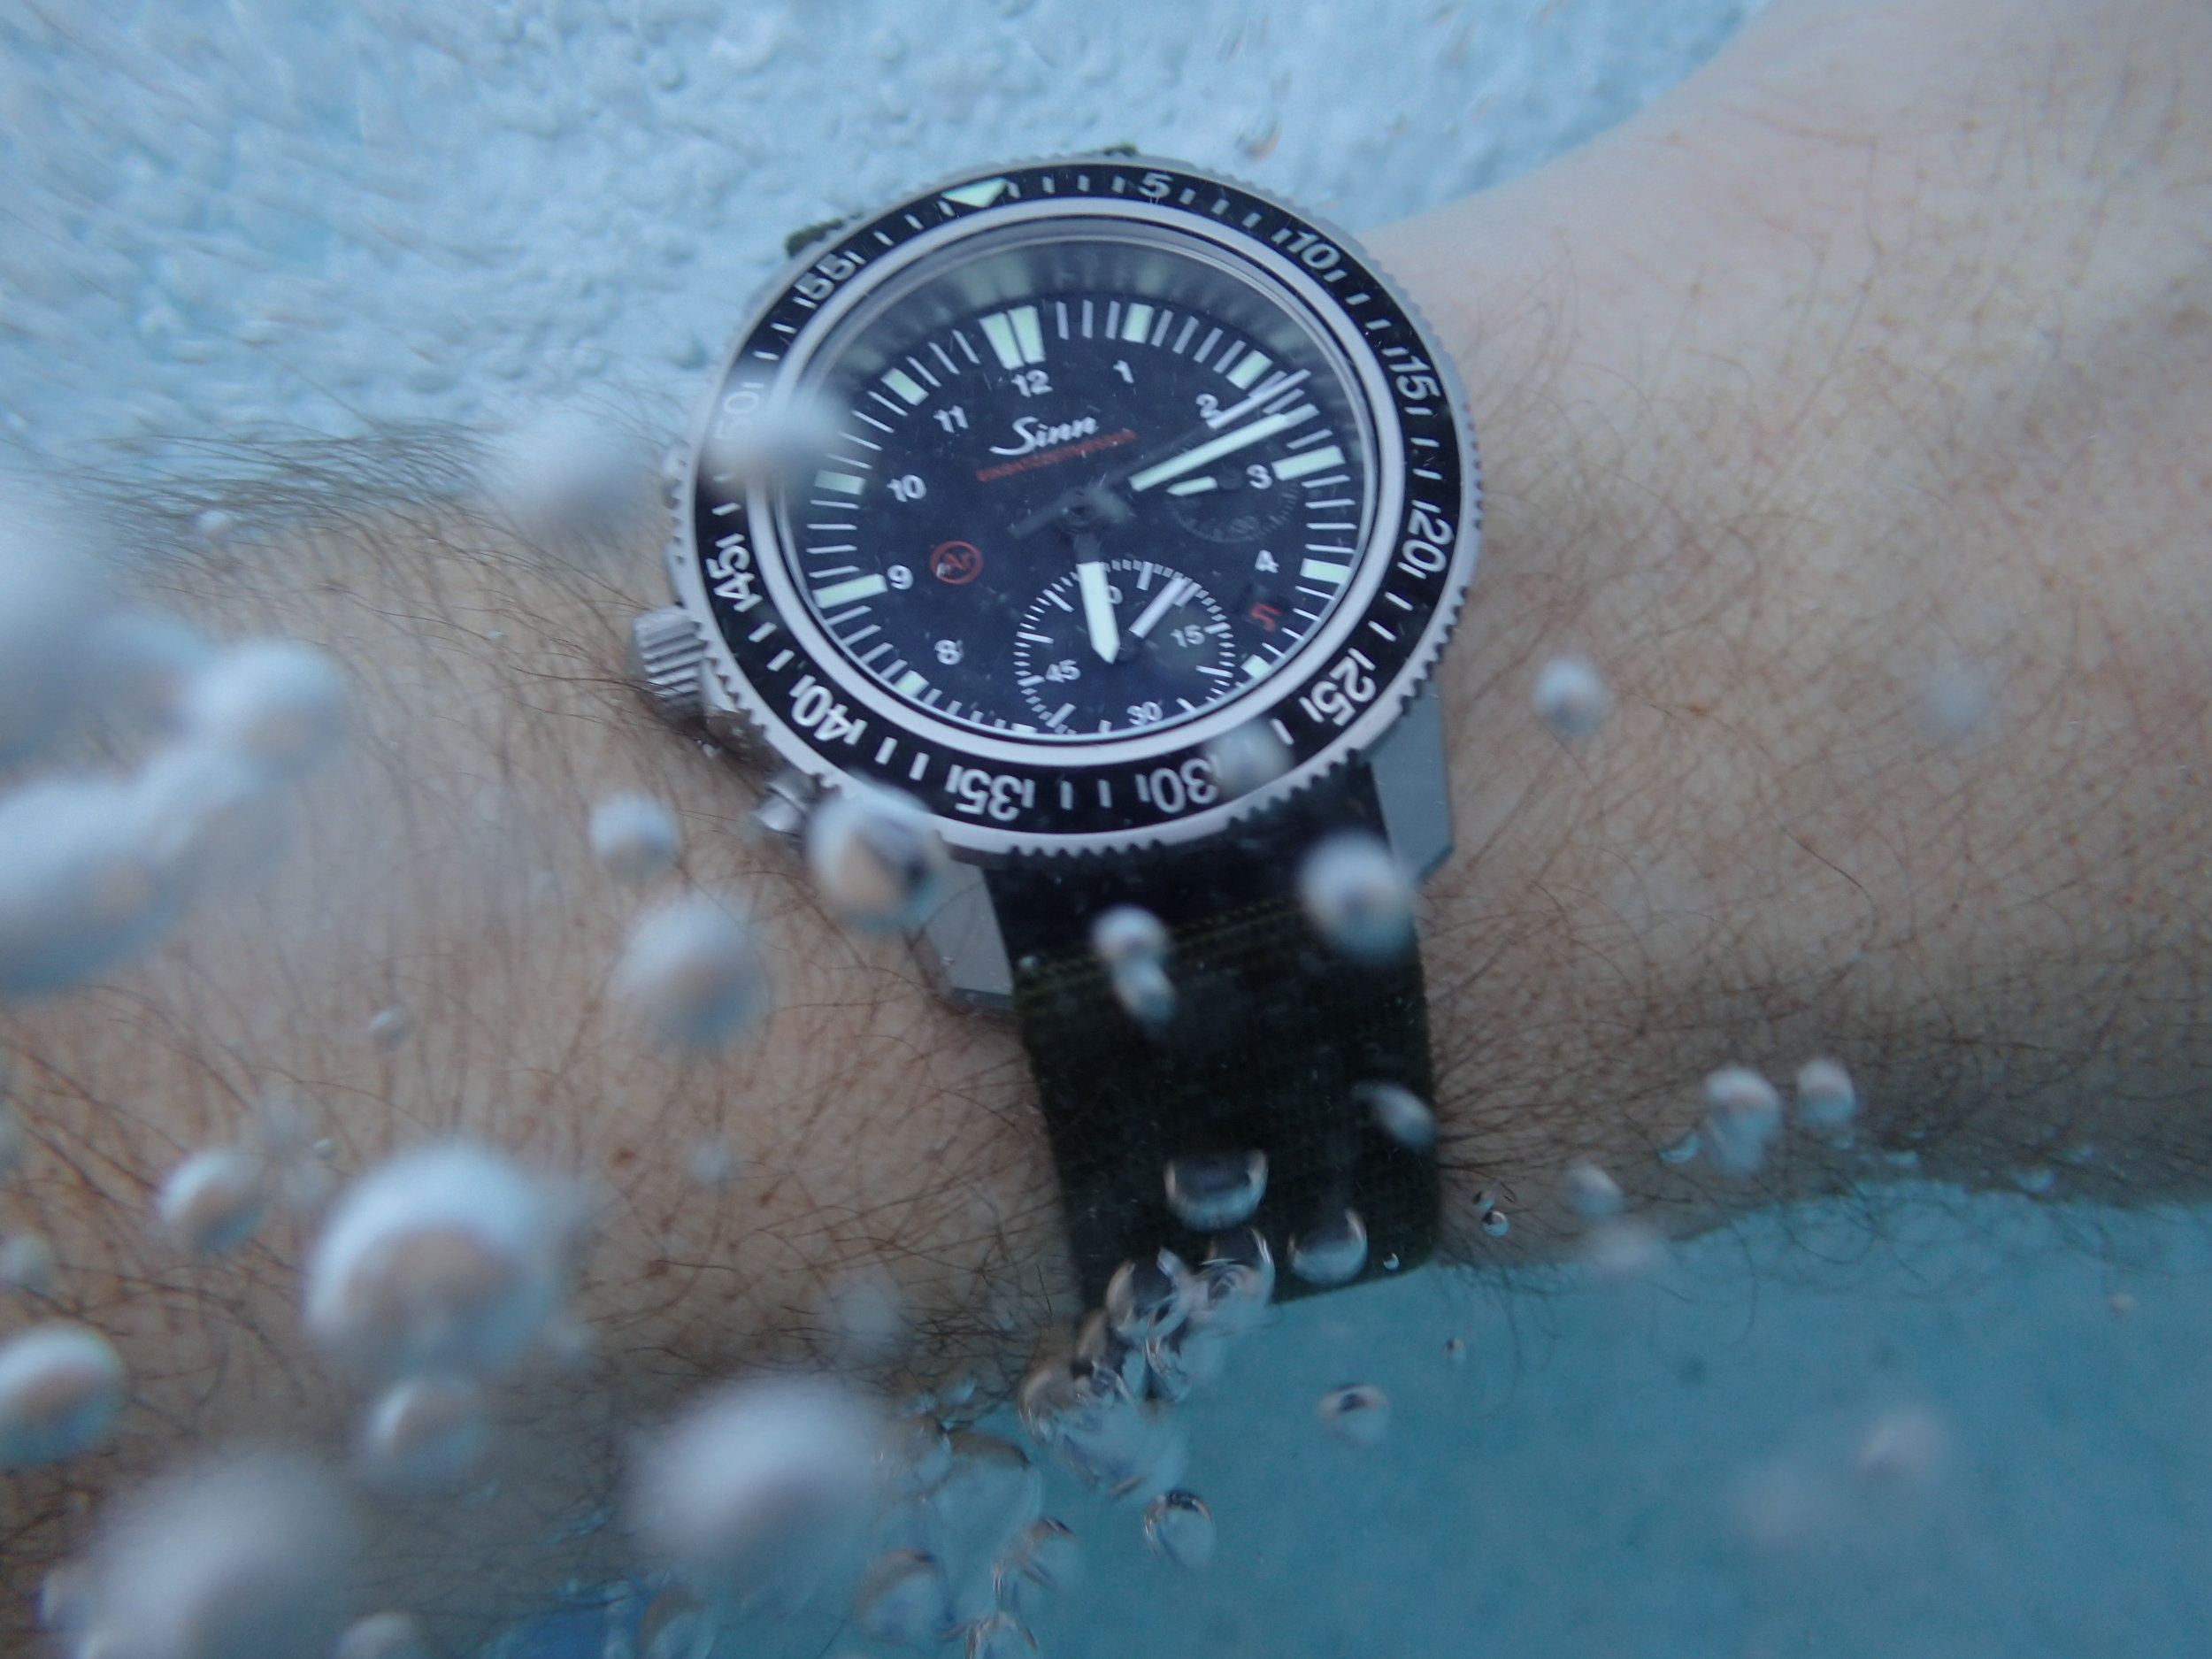 And unlike just about any other chronograph, even dive-rated watches, the EZM 13's pushers can be used under water to a depth of about 15 feet.